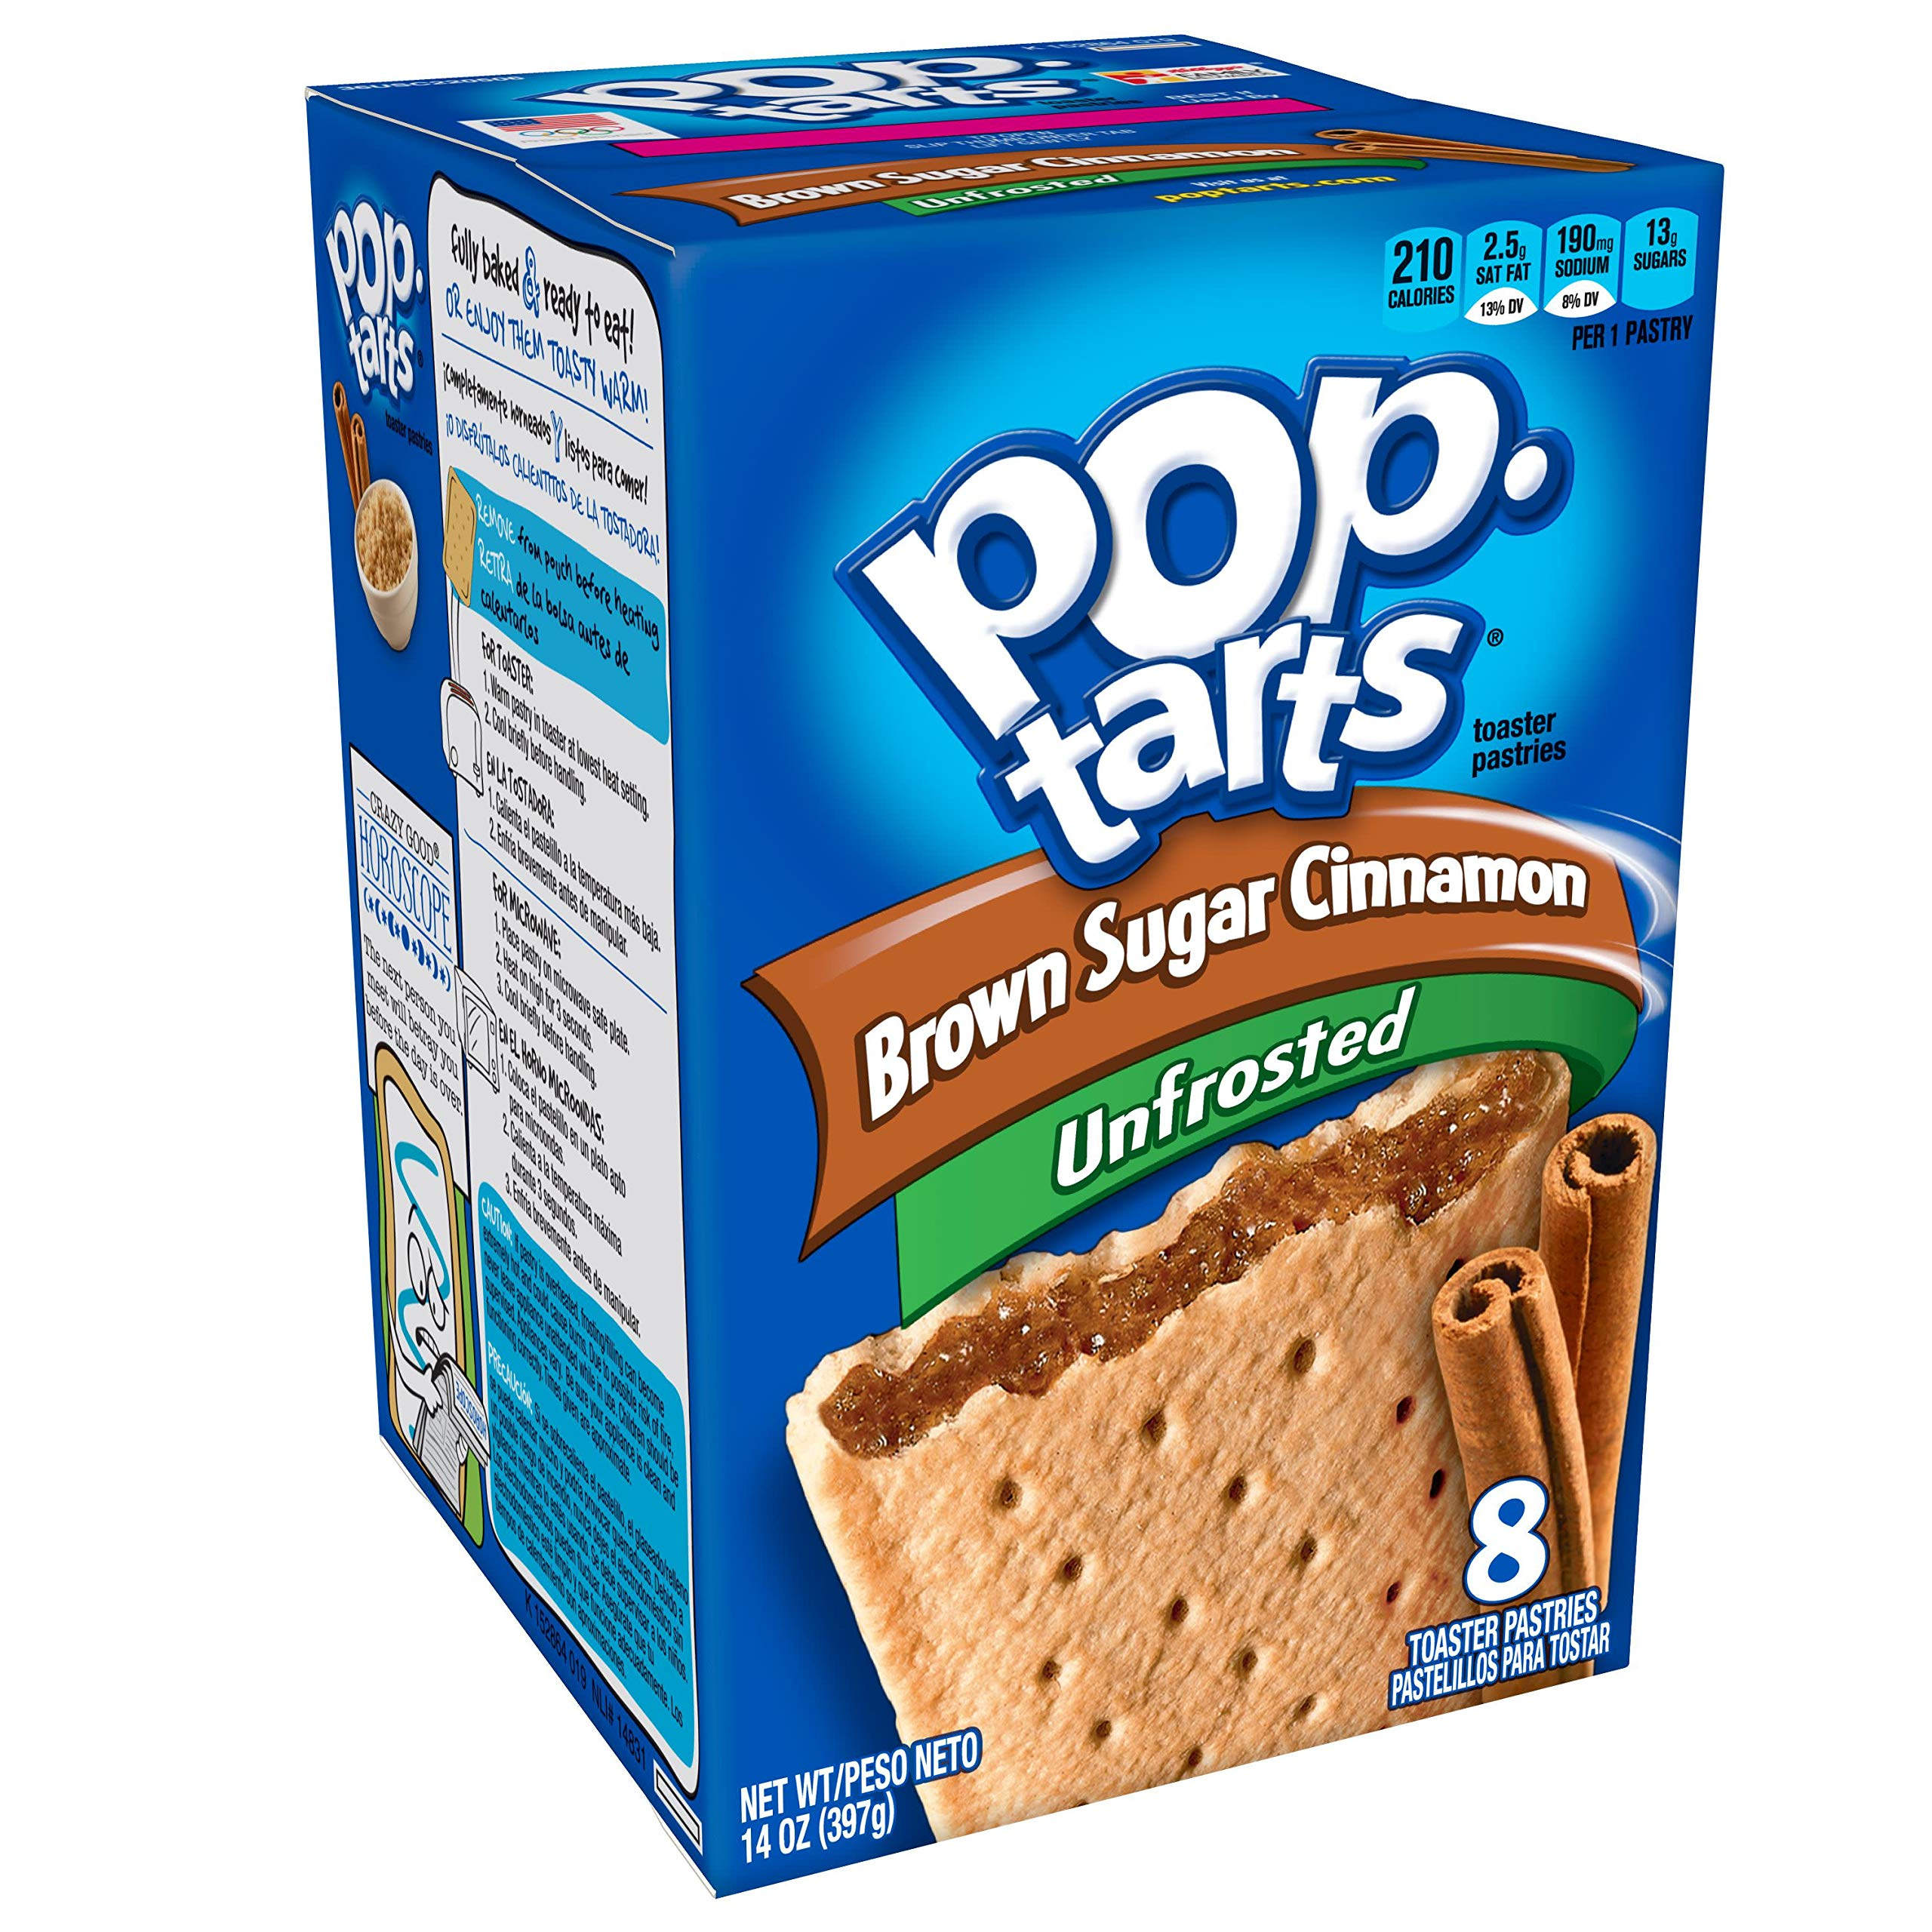 Pop-Tarts Breakfast Toaster Pastries, Unfrosted Brown Sugar Cinnamon Flavored, 14 oz (8 Count)(Pack of 12)